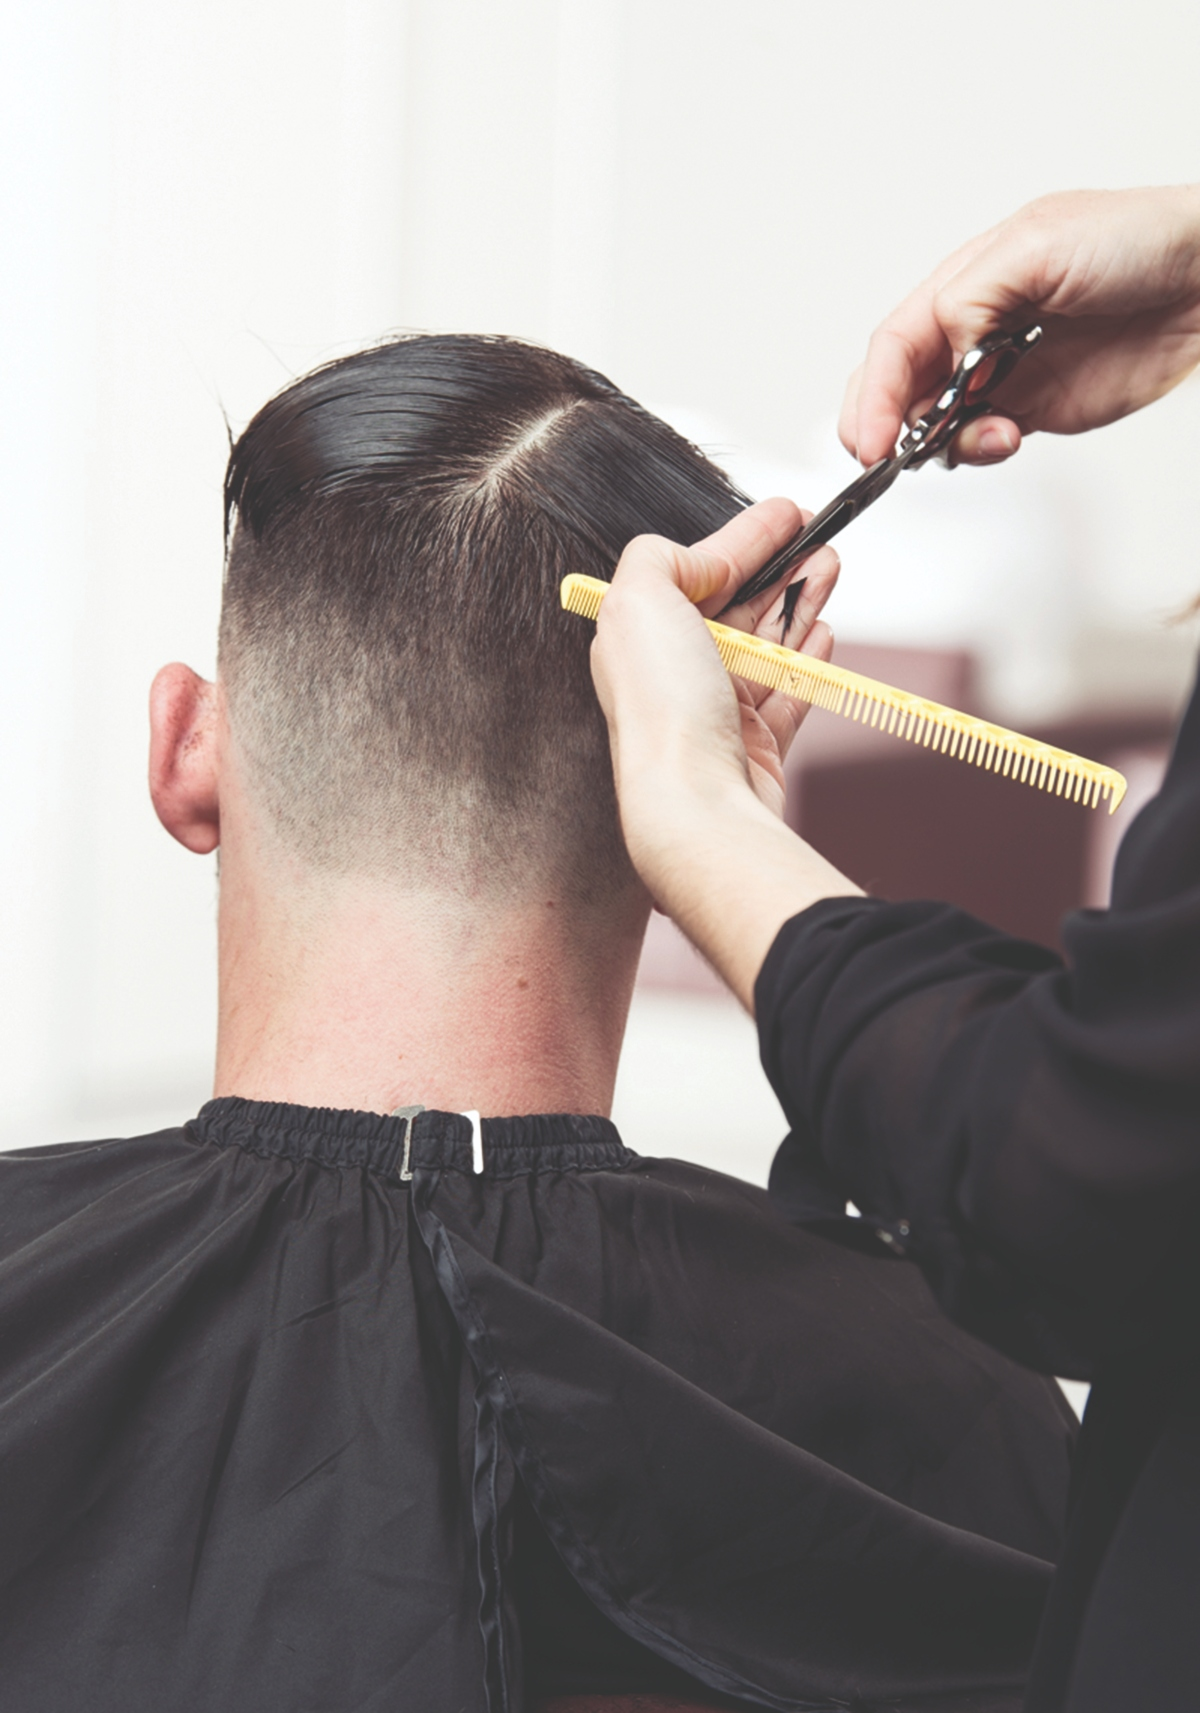 stella_trend_2019_barber_step9